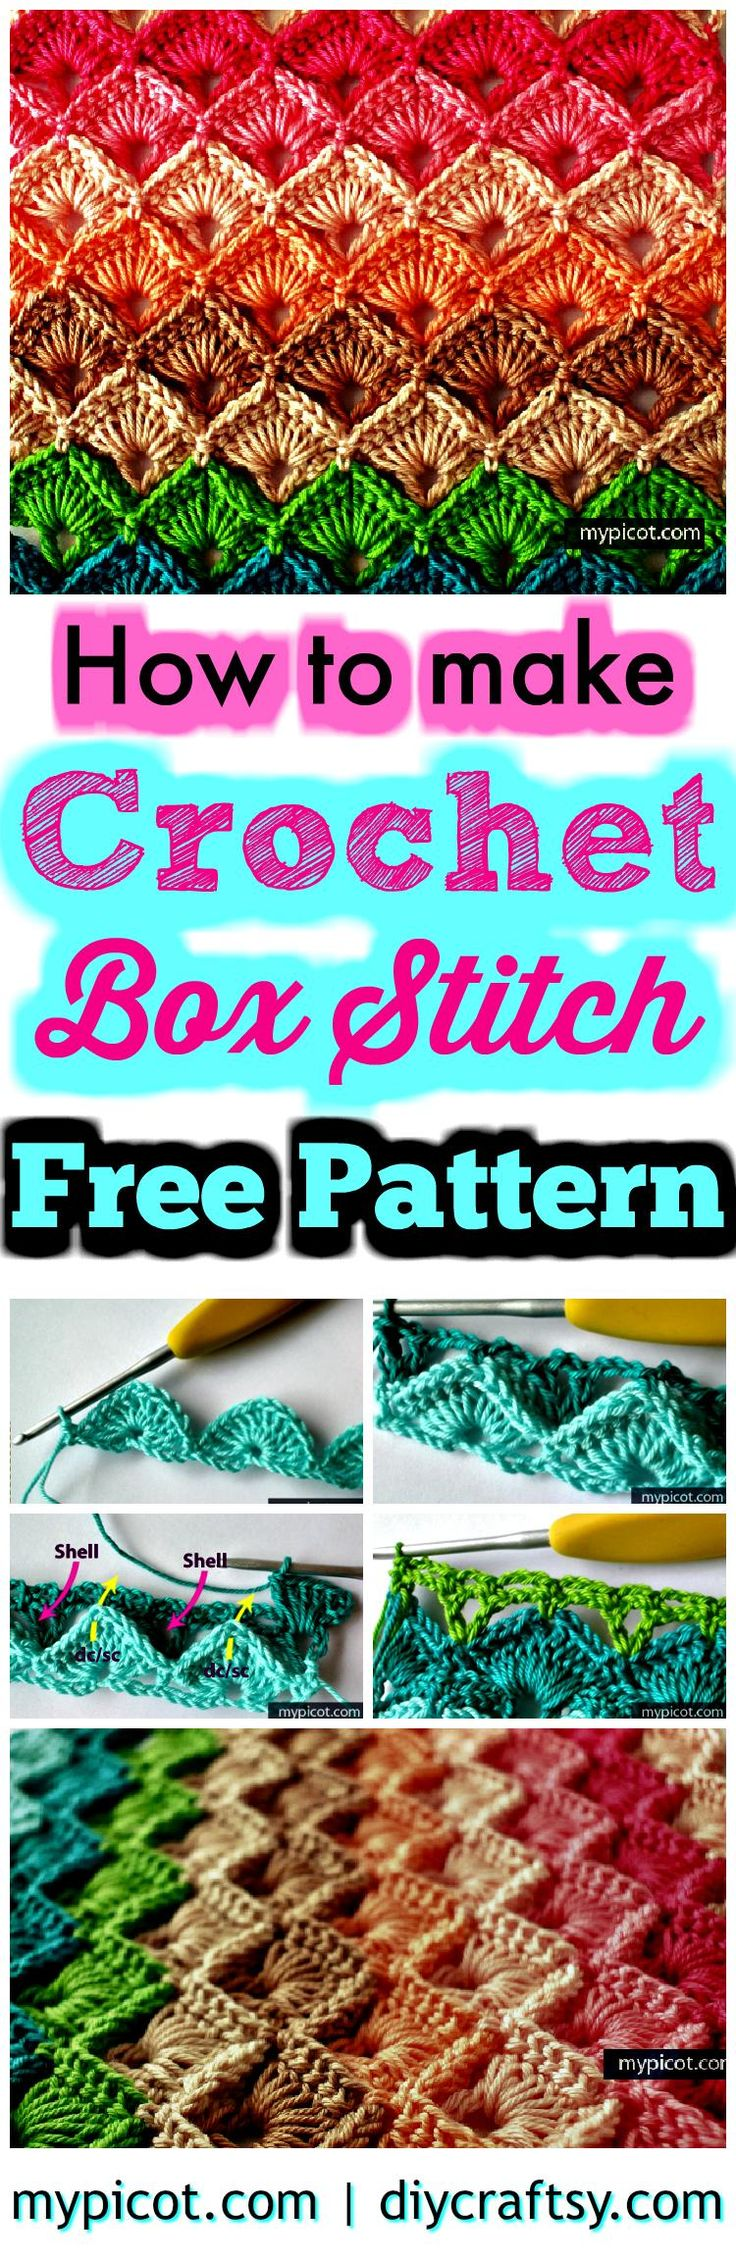 crochet step by step instructions with pictures